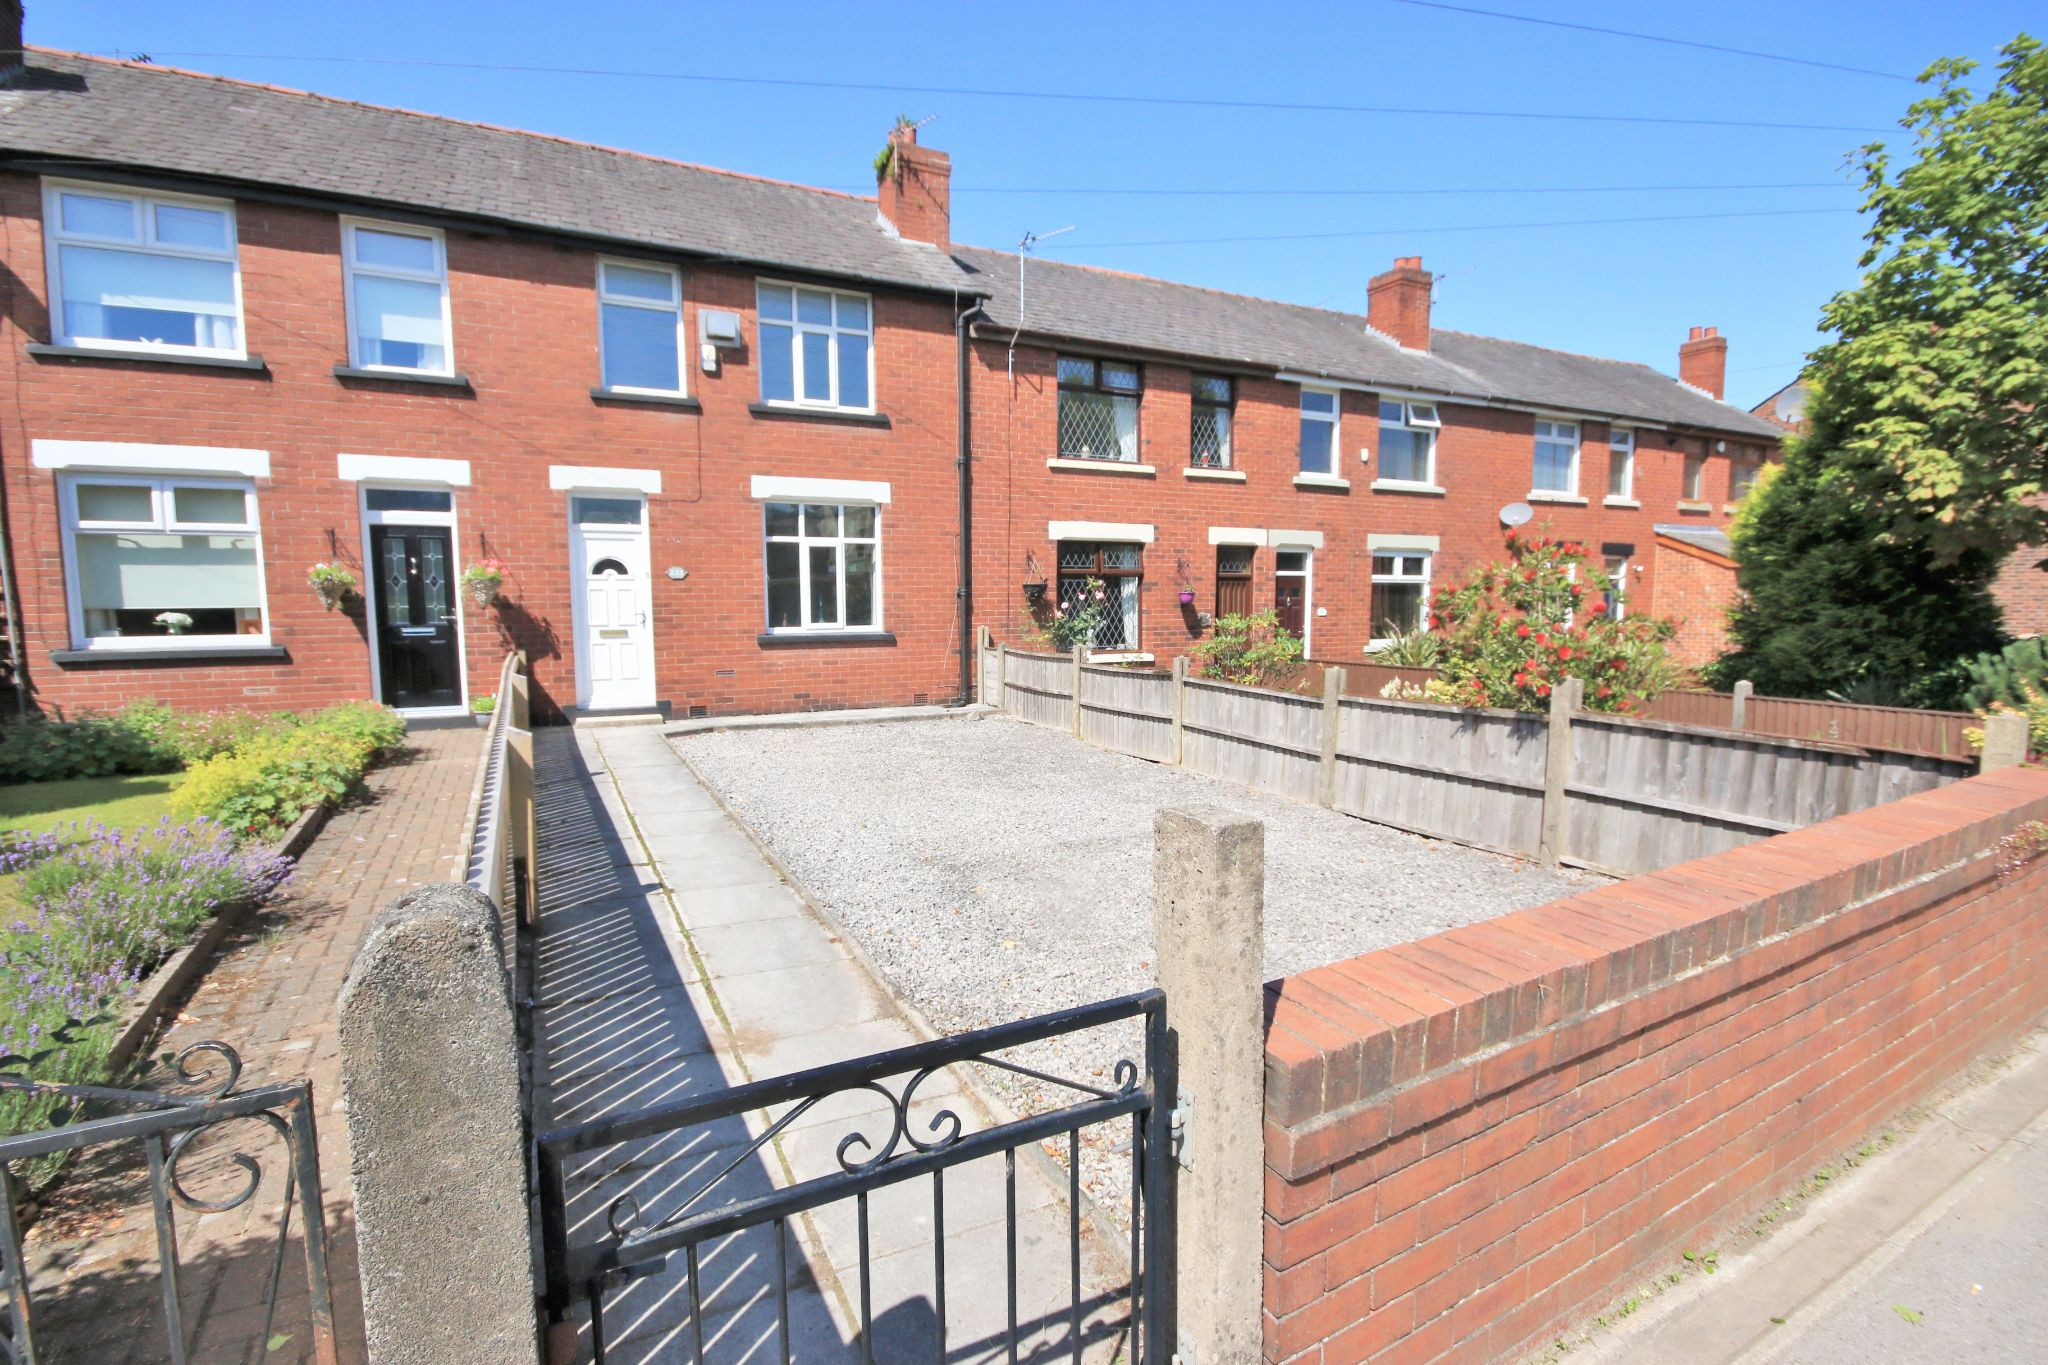 3 bedroom mid terraced house For Sale in Wigan - Photograph 1.